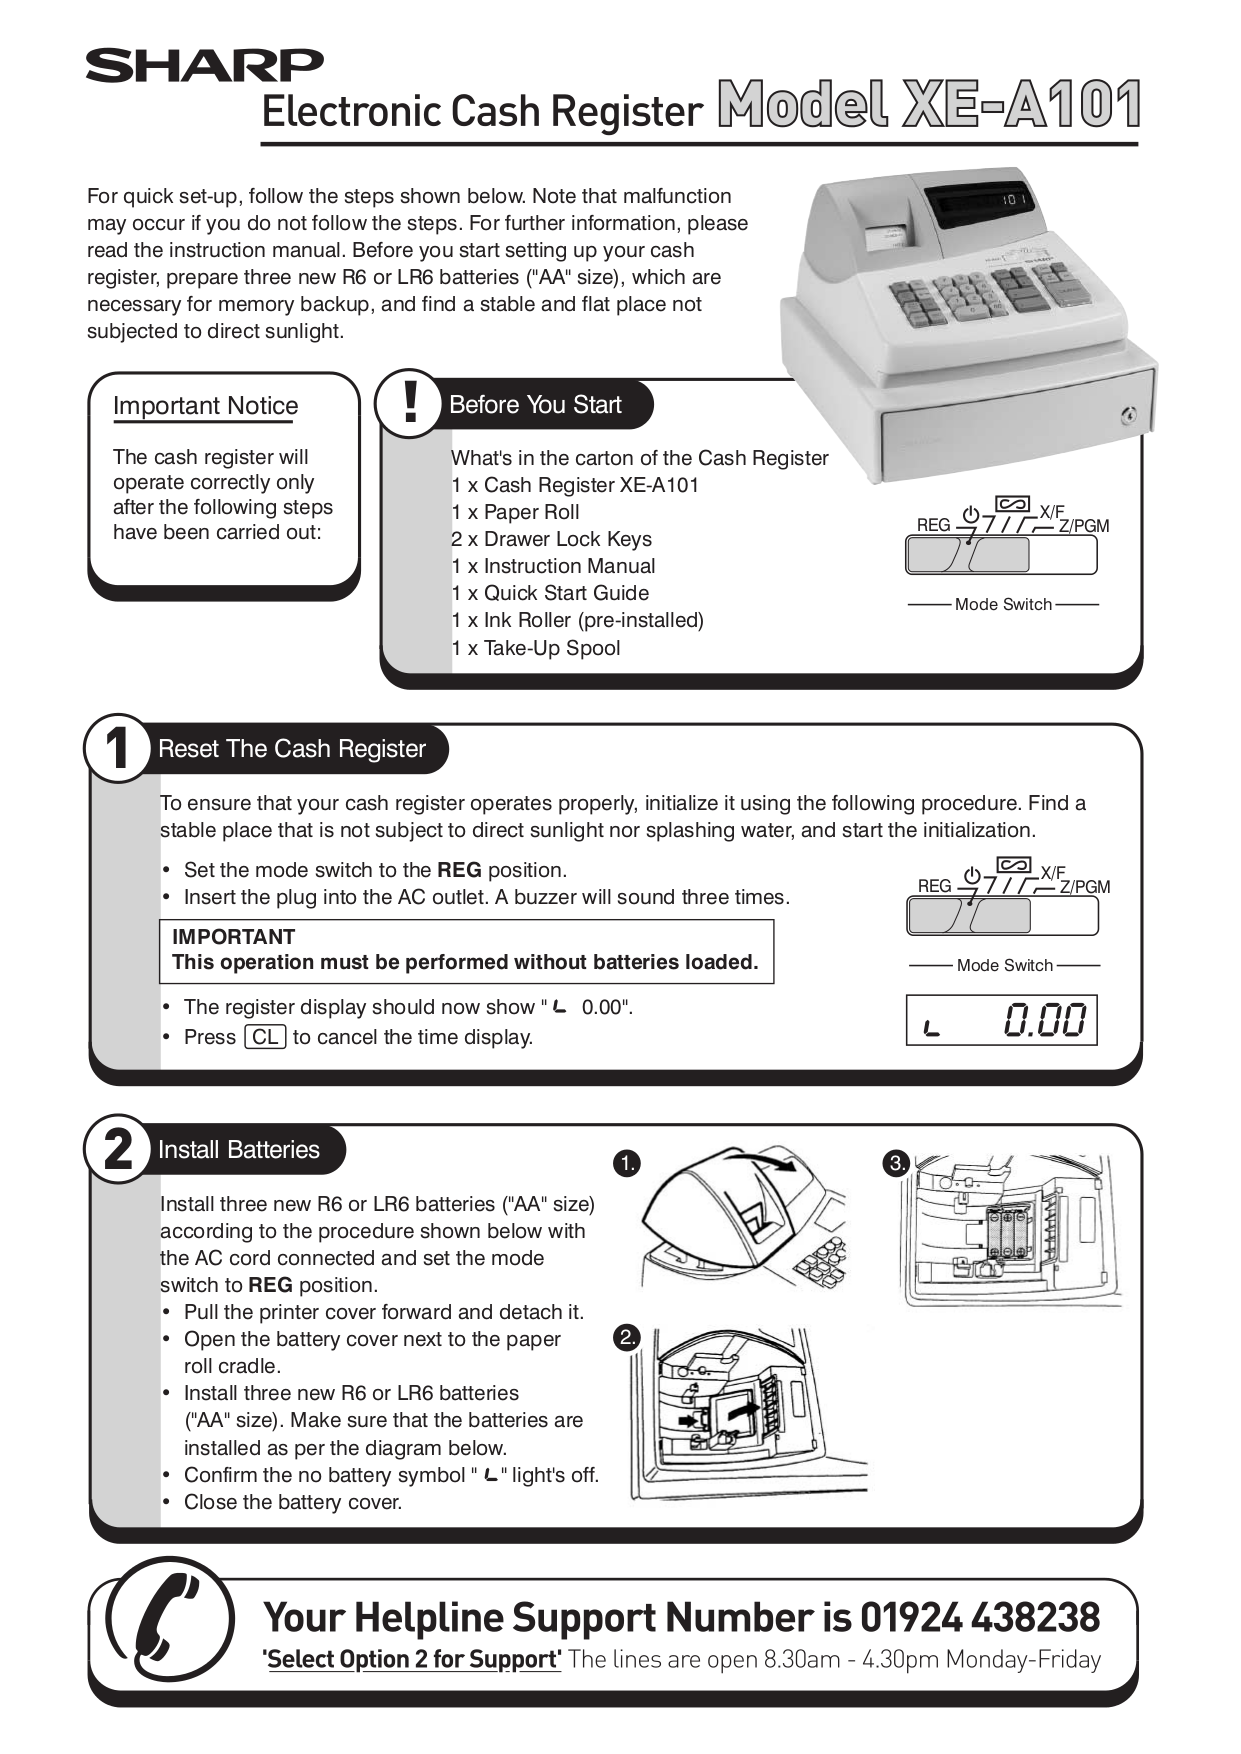 instruction manual for sharp xe a101 rh instruction manual for sharp xe a101 ballew us sharp xe a101 manuel electronic cash register sharp xe a101 manual